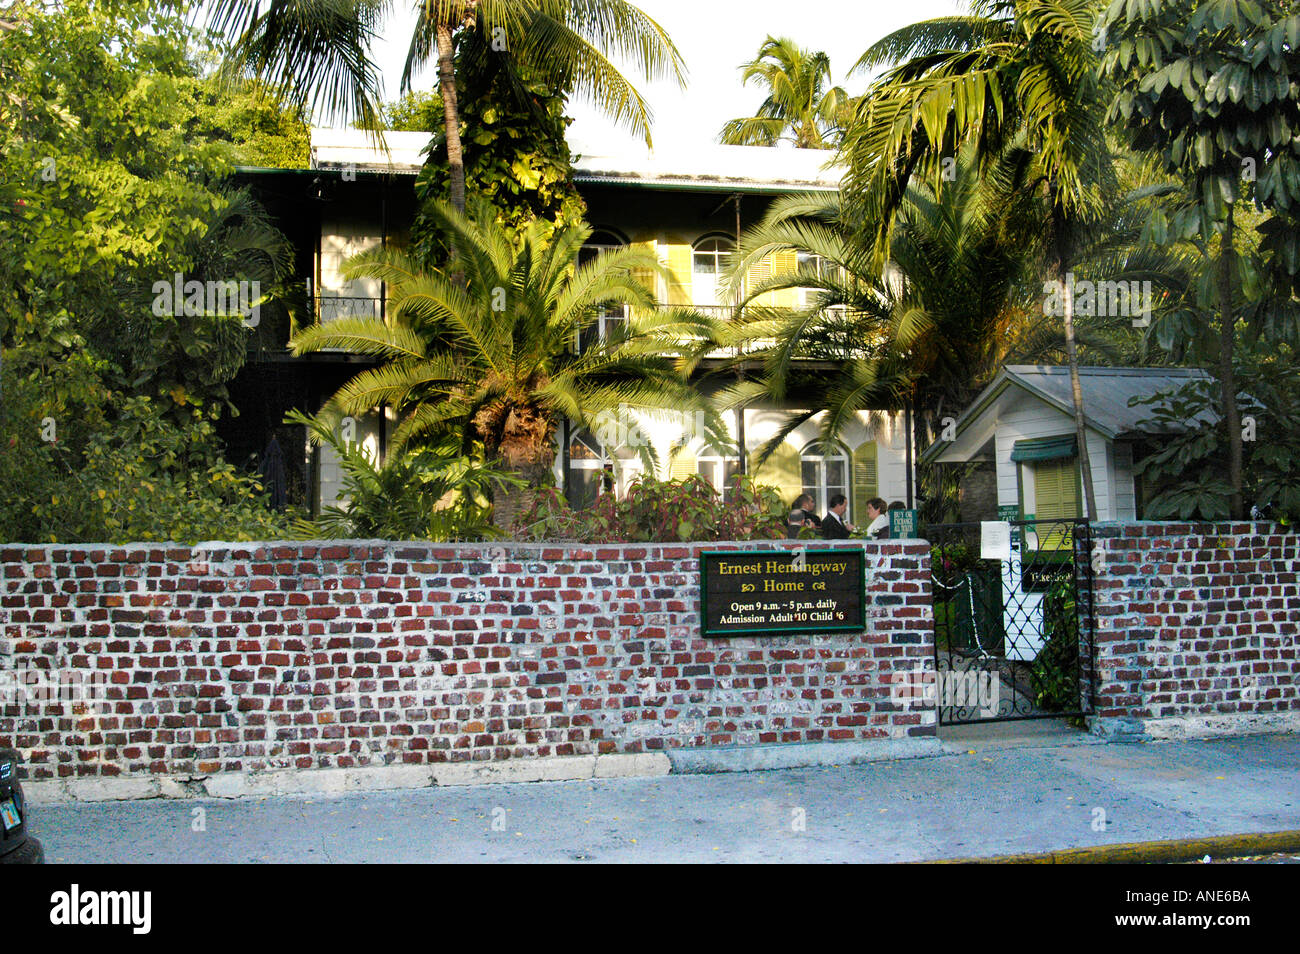 Ernest Hemingway Haus in Key West Florida FL Stockbild